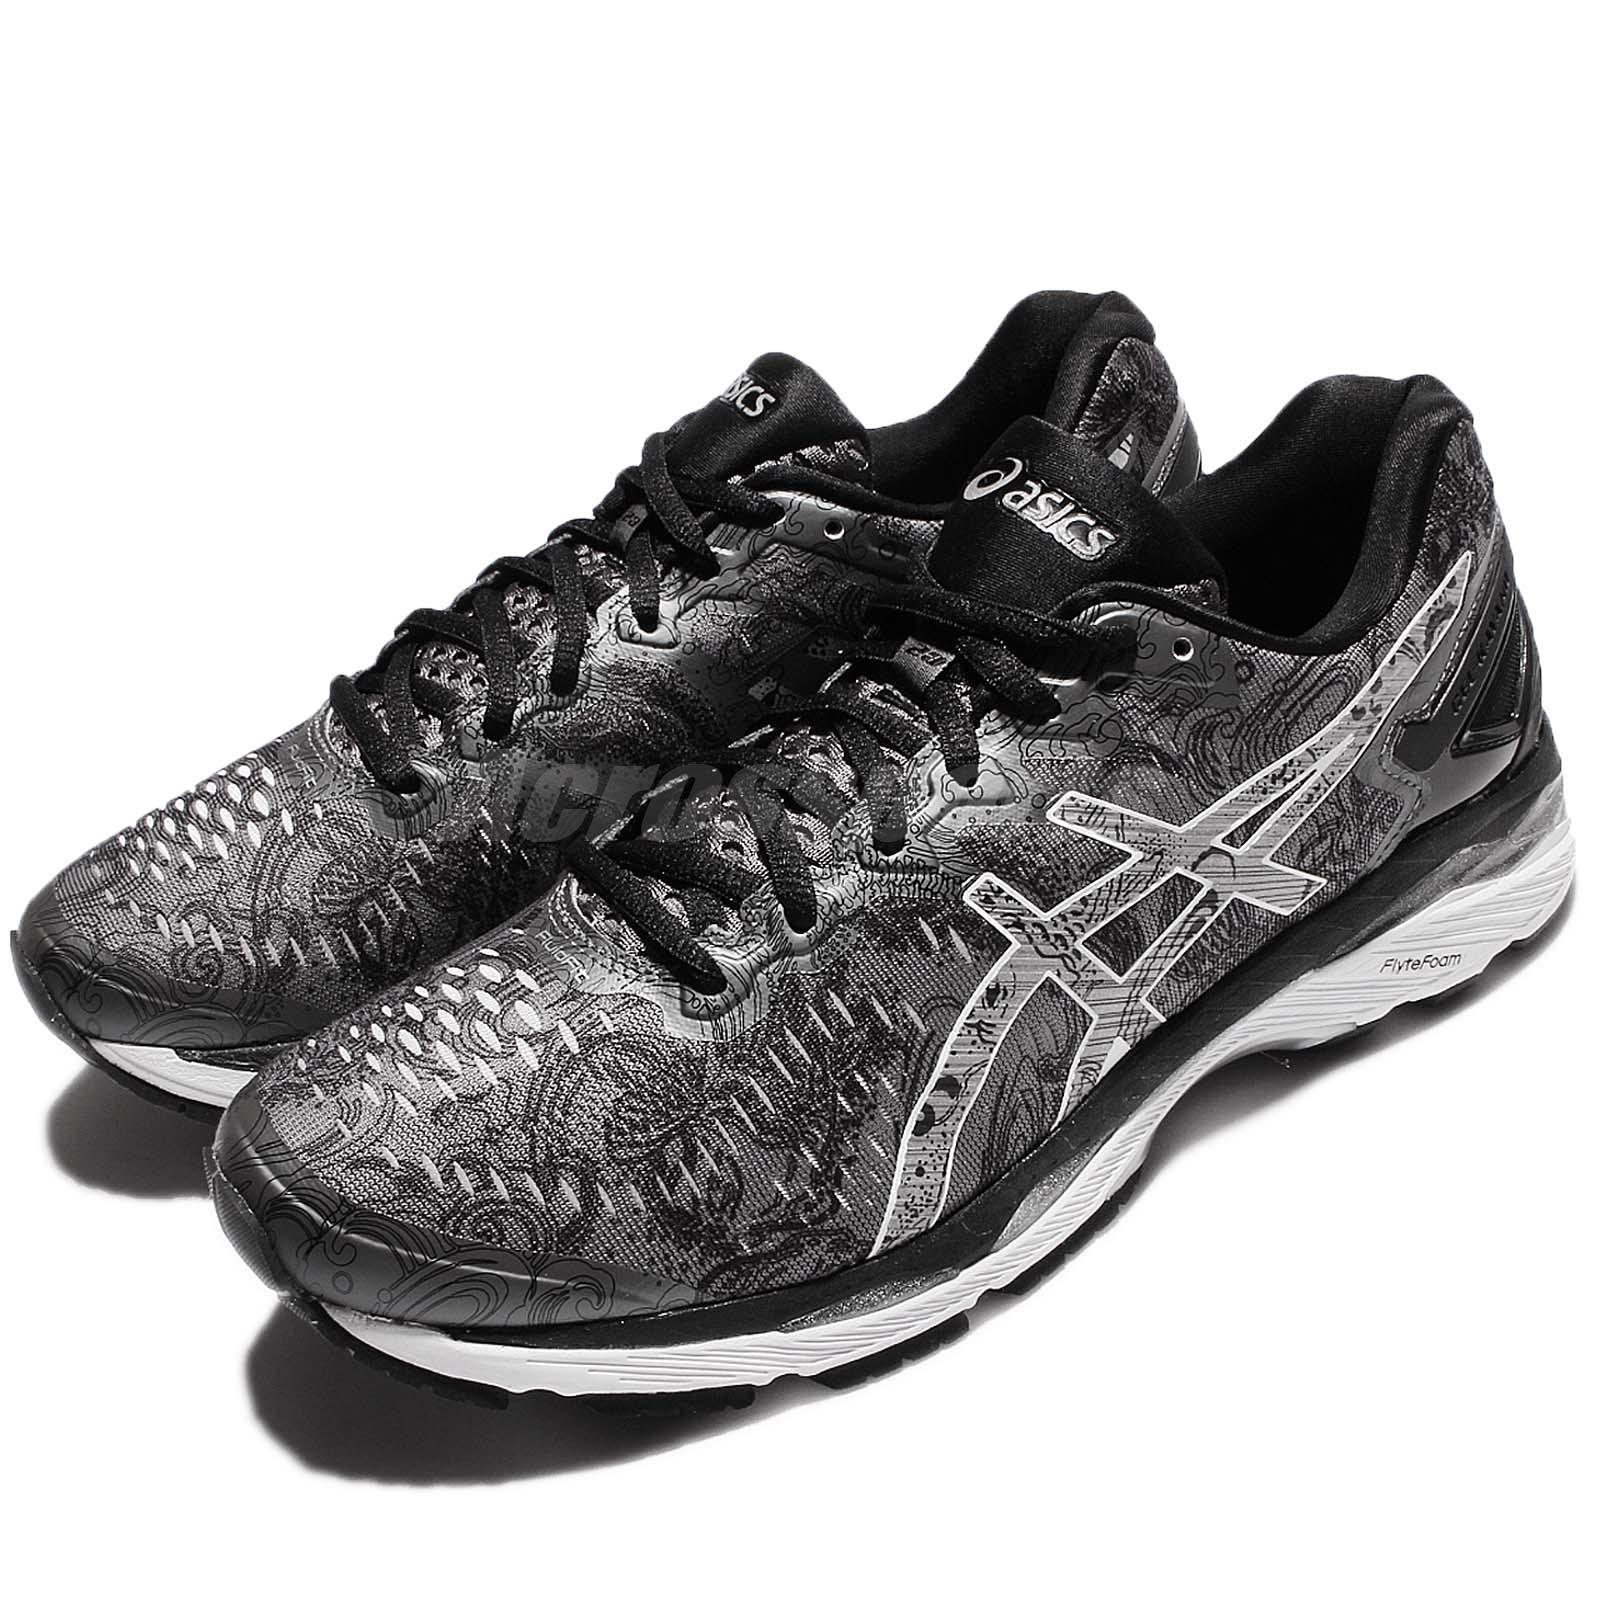 c15f94032f38 Details about Asics Gel-Kayano 23 Lite-Show Black Silver Men Running Shoes  Sneakers T6A1N-9793